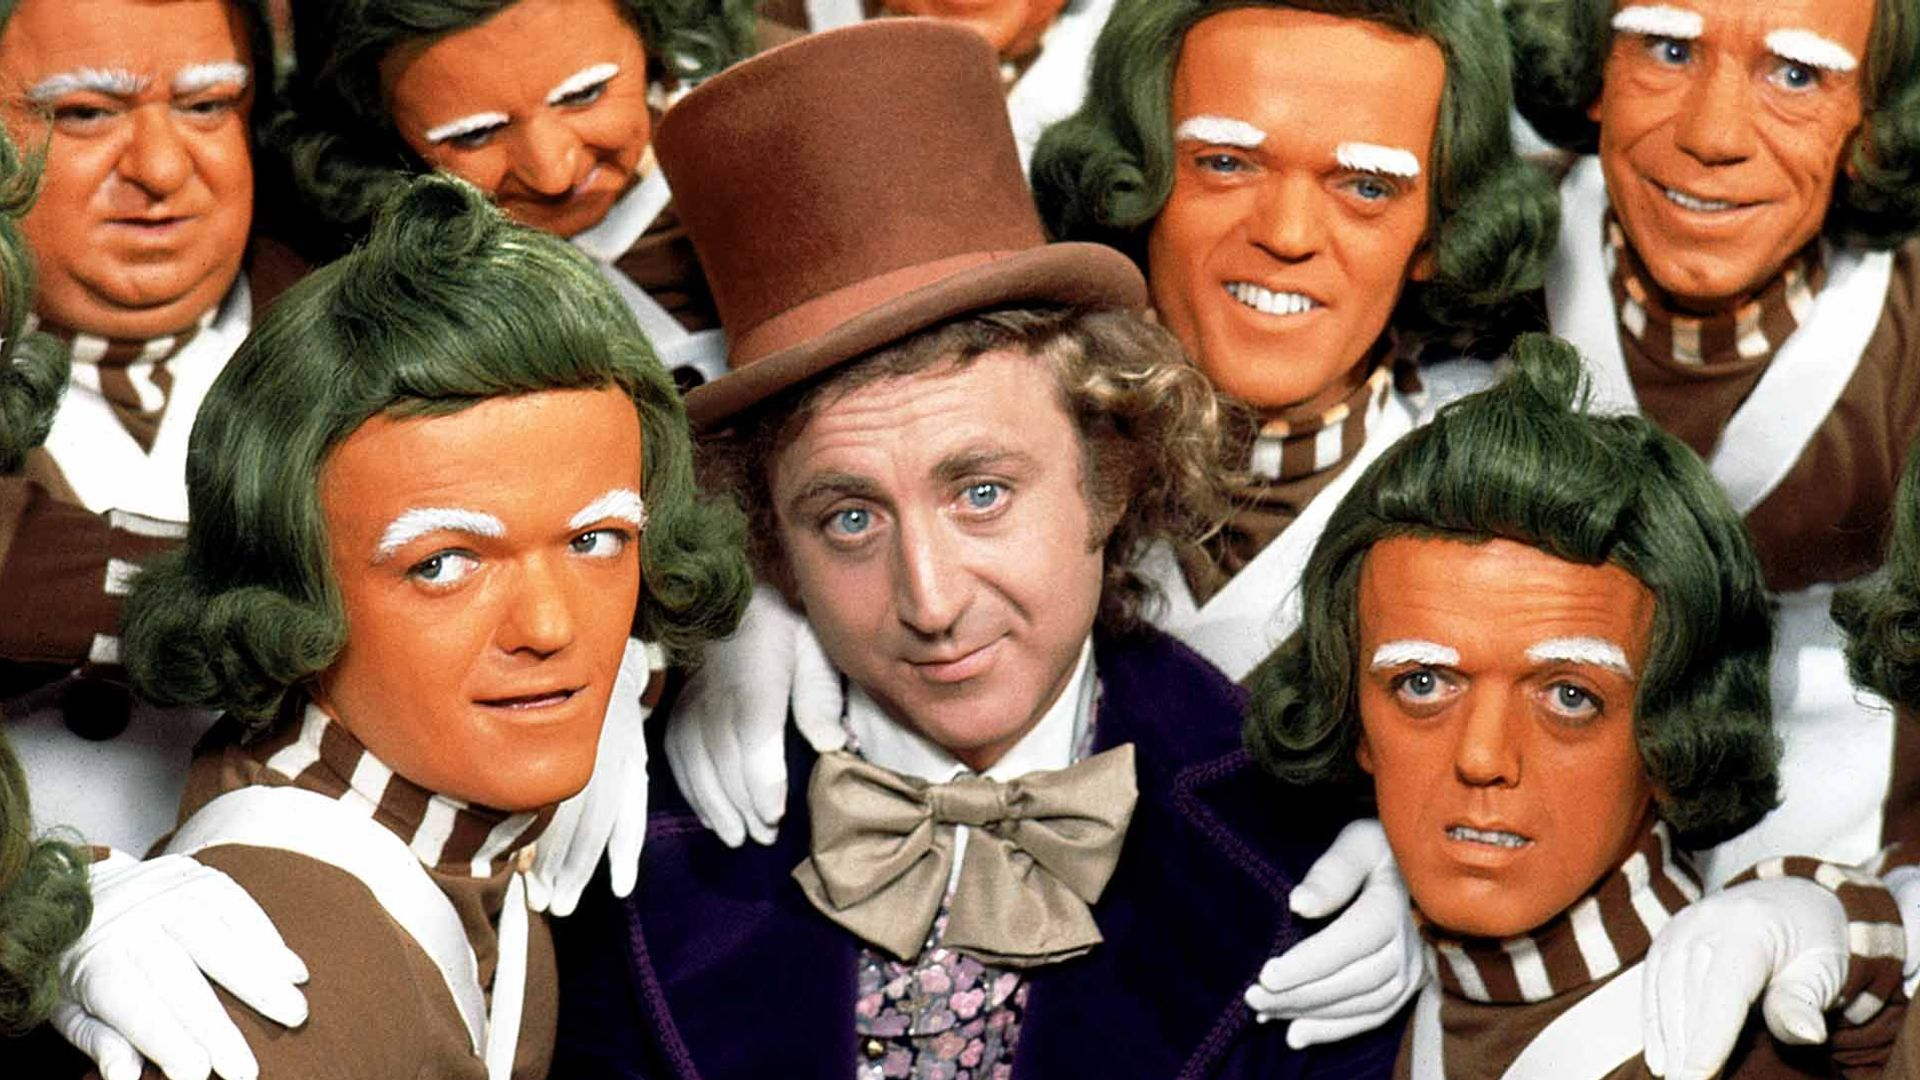 """Gene Wilder and the Oompa-Loompas in """"Willy Wonka and the Chocolate Factory."""""""